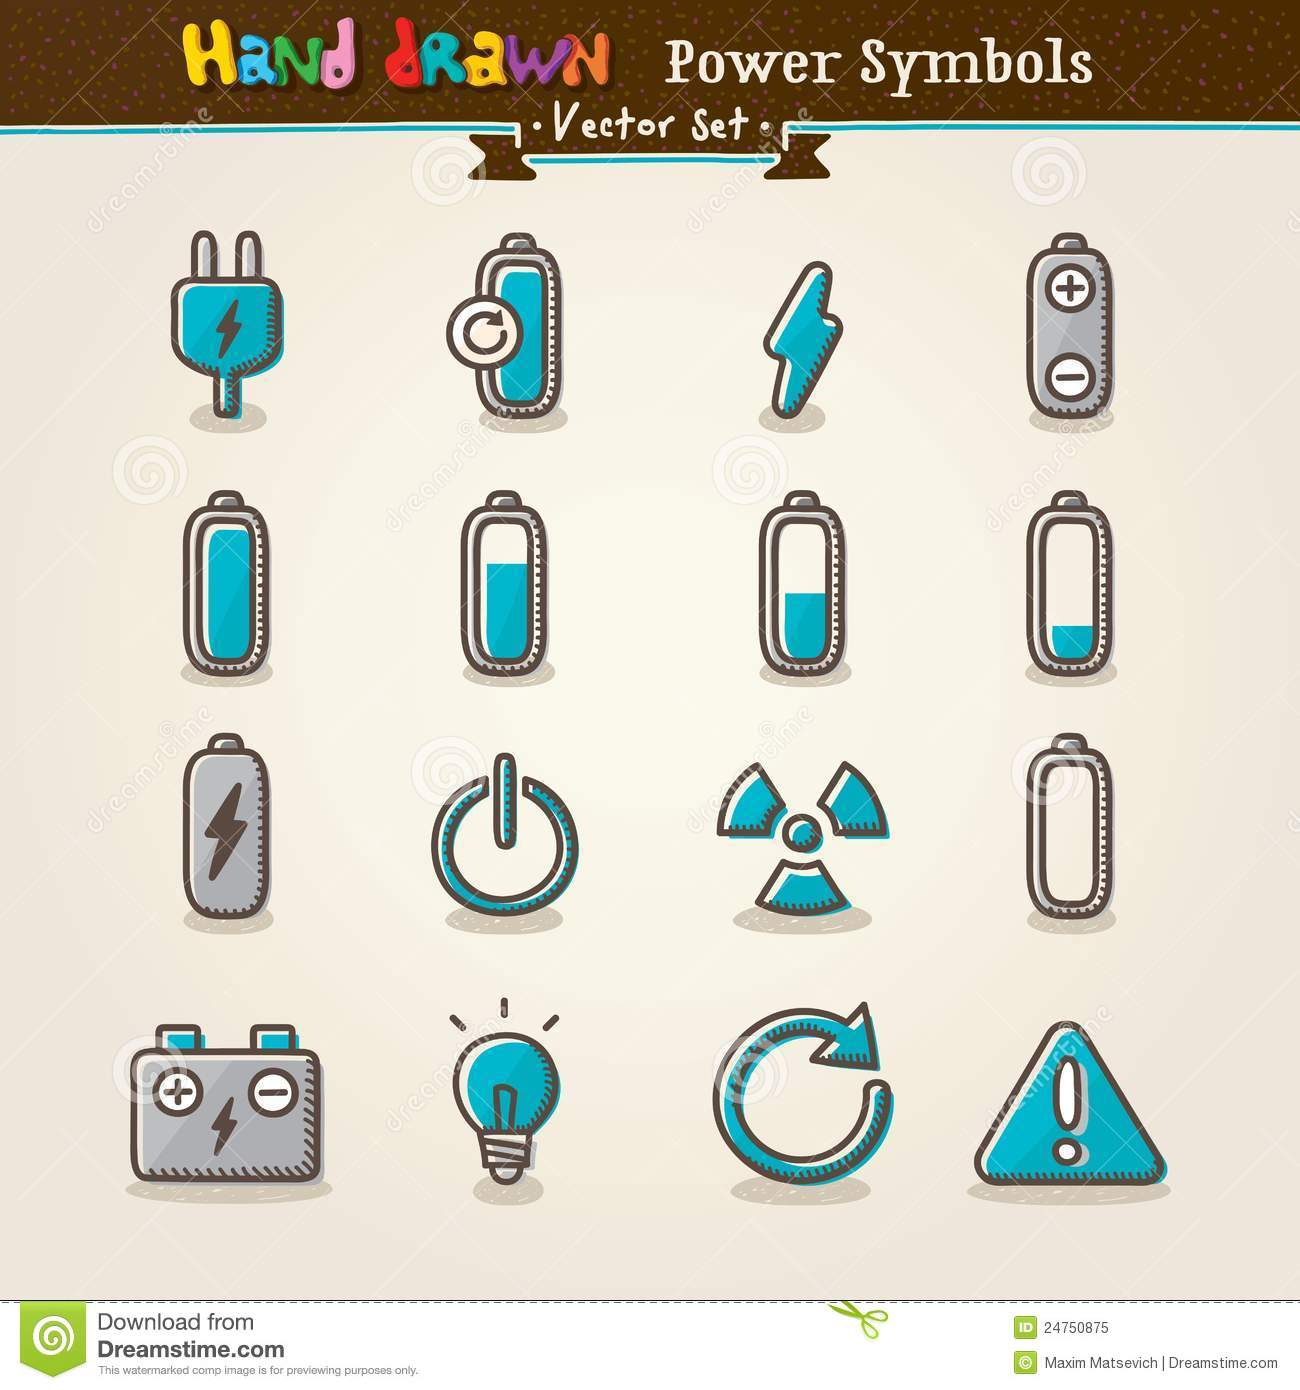 Smartphone Clipart Black And White also Exp Spa Chp 17 Current Of Electricity together with Royalty Free Stock Photo Vector Hand Draw Power Symbols Icon Set Image24750875 together with Gr8 Ec 03 furthermore Stock Photo Empty Battery 3d Icon. on battery cell symbol